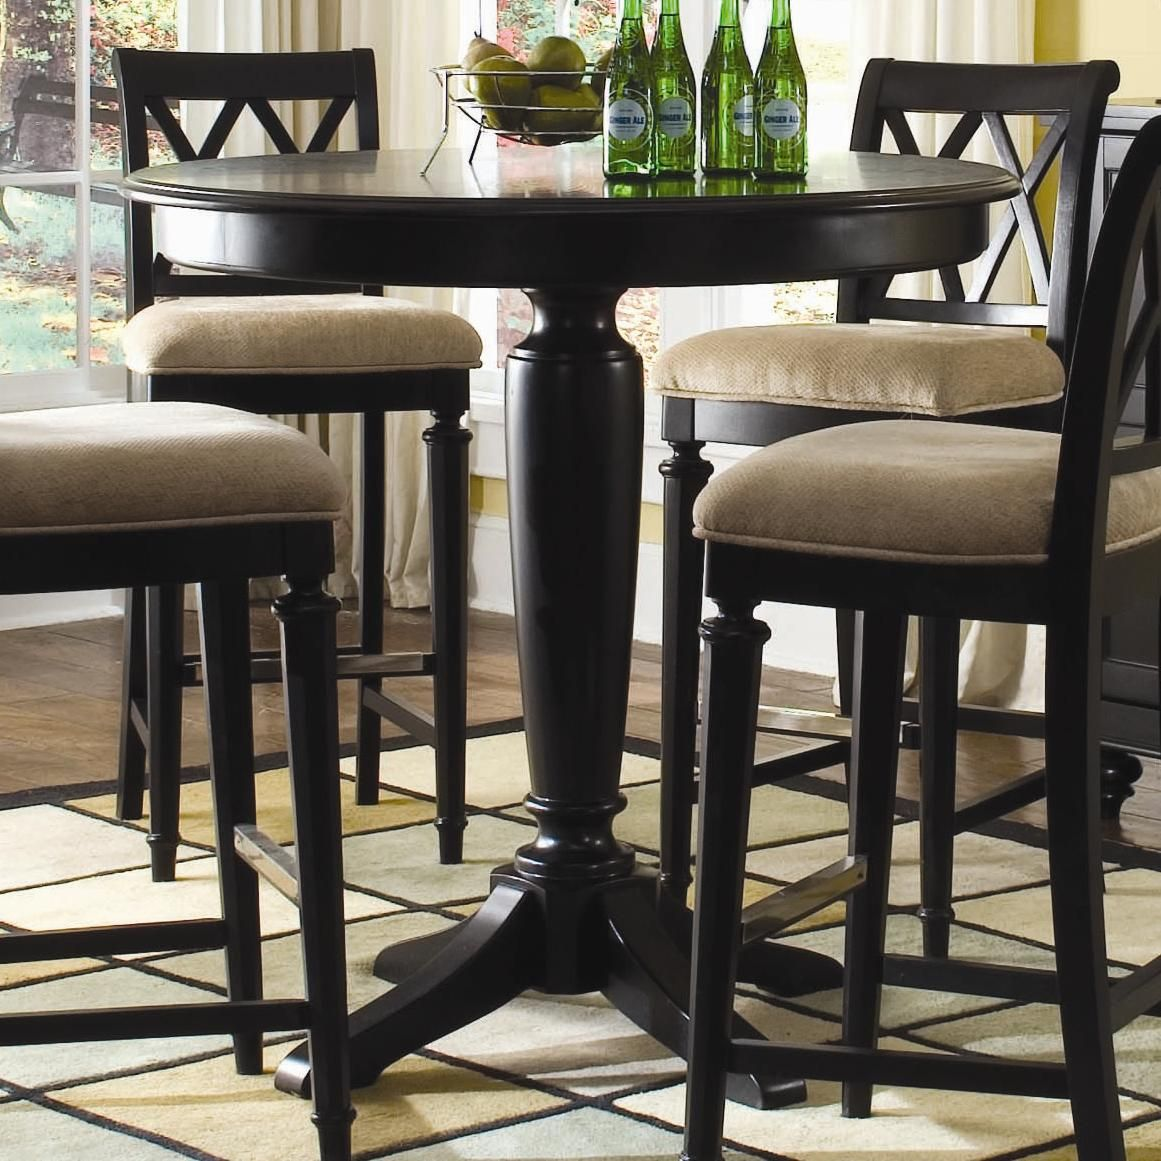 Tisch Theke Counter Height Round Table And Chairs Stühle Pinterest